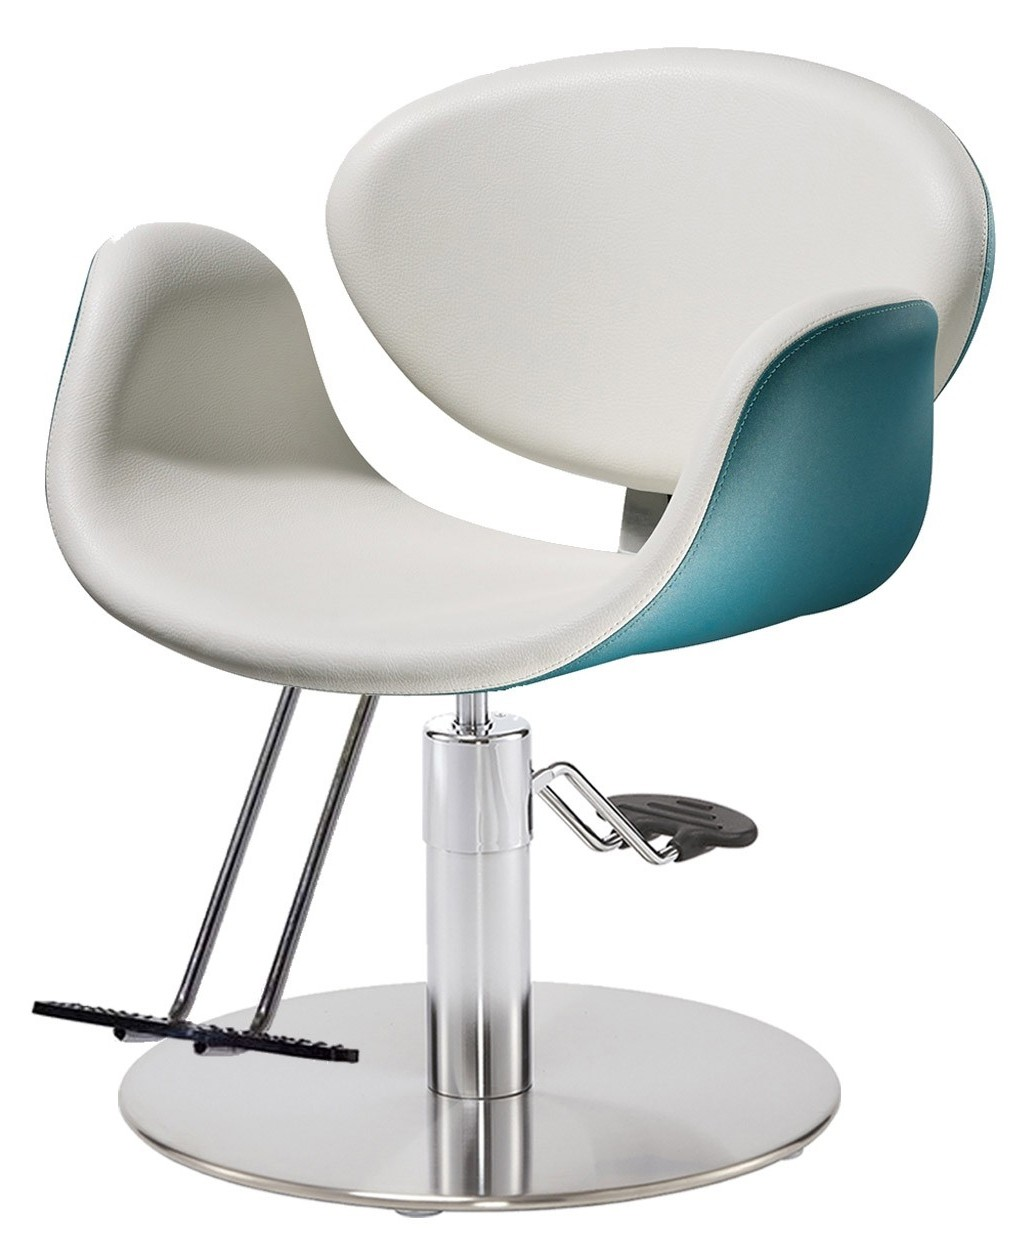 SH-430 Amber Styling Chair